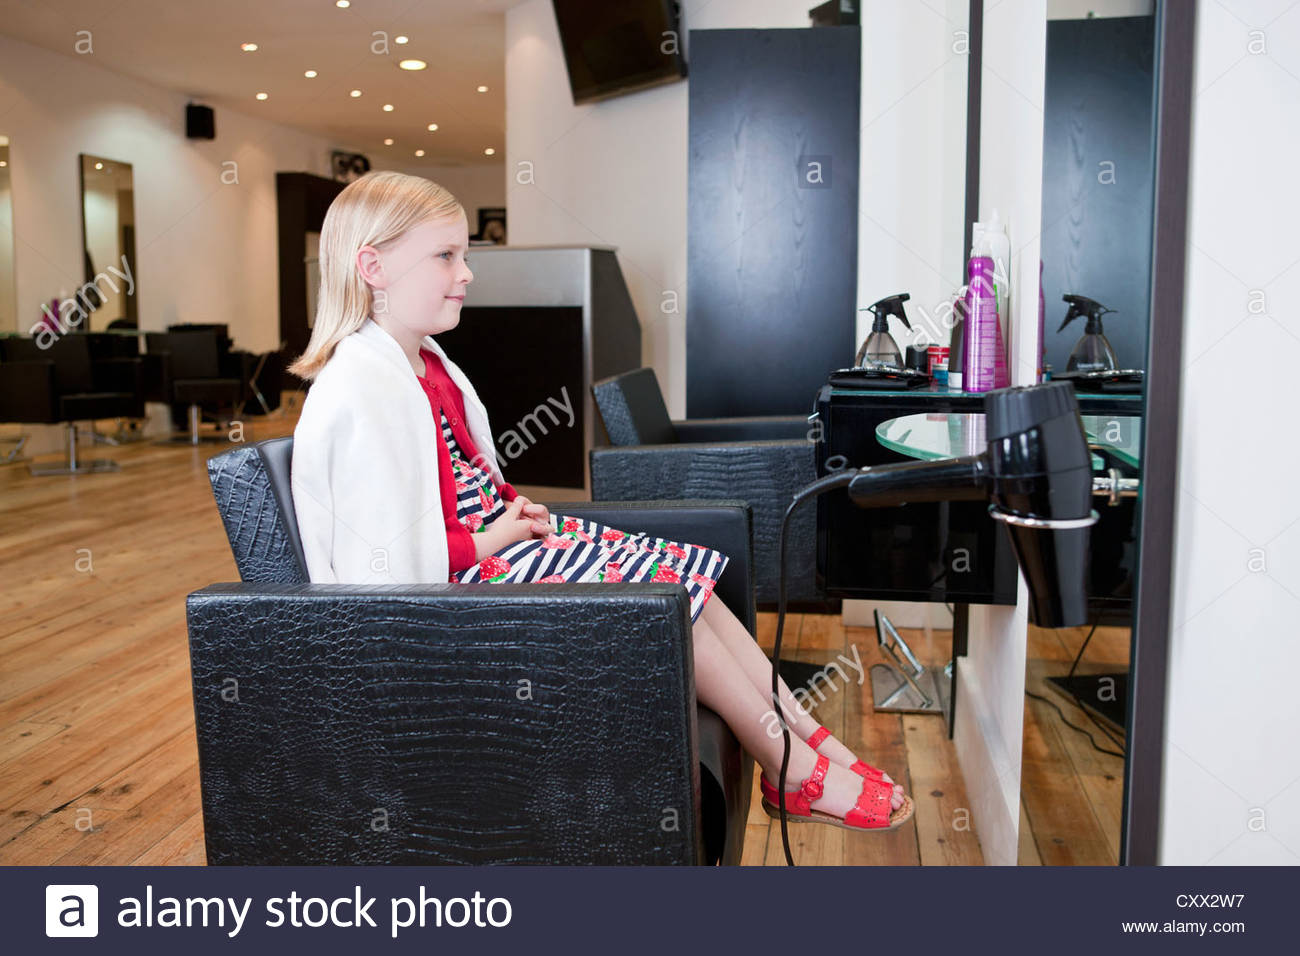 A young girl looking in a mirror at a hairdressing salon - Stock Image